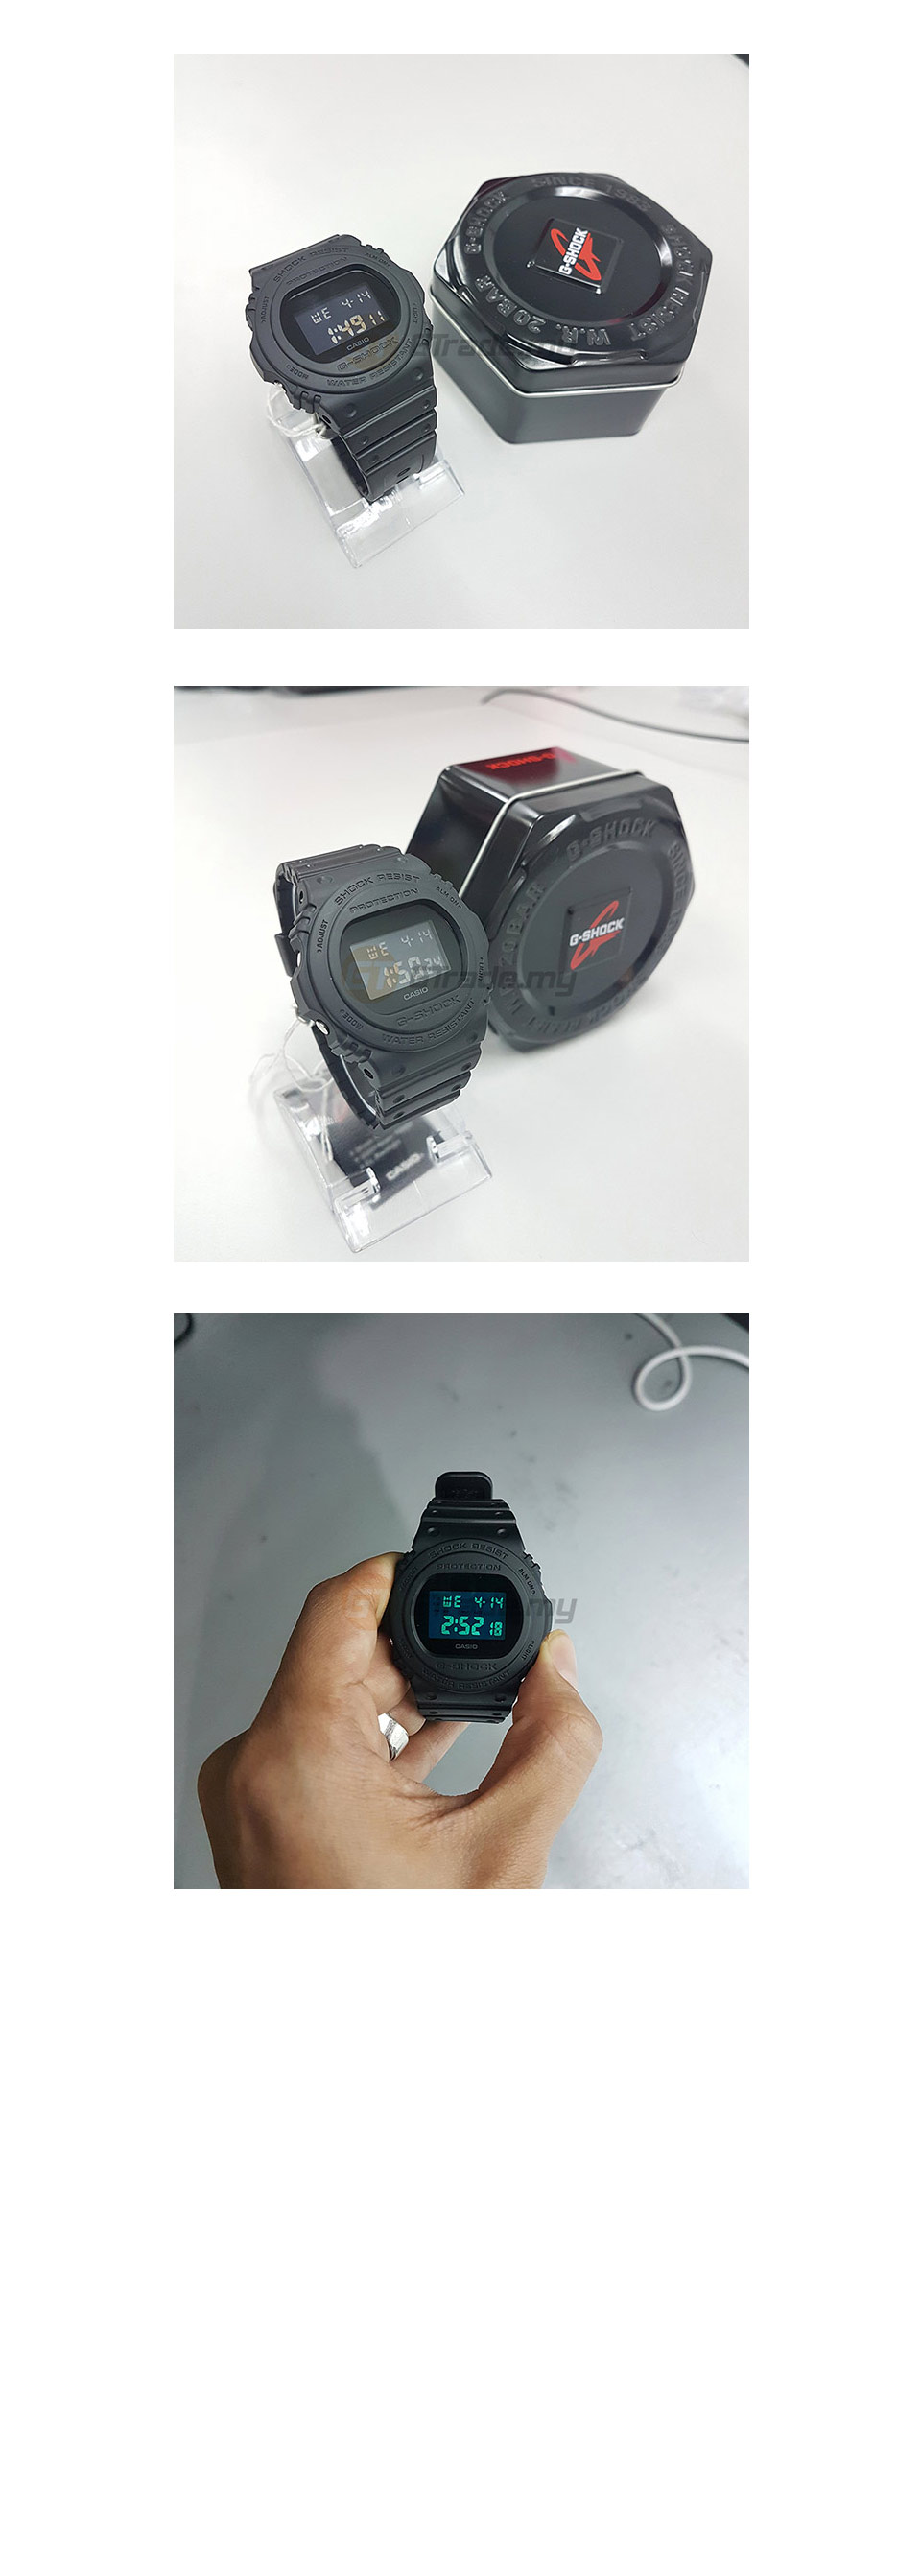 bcasio-g-shock-digital-watch-dw-5750e-1b-r